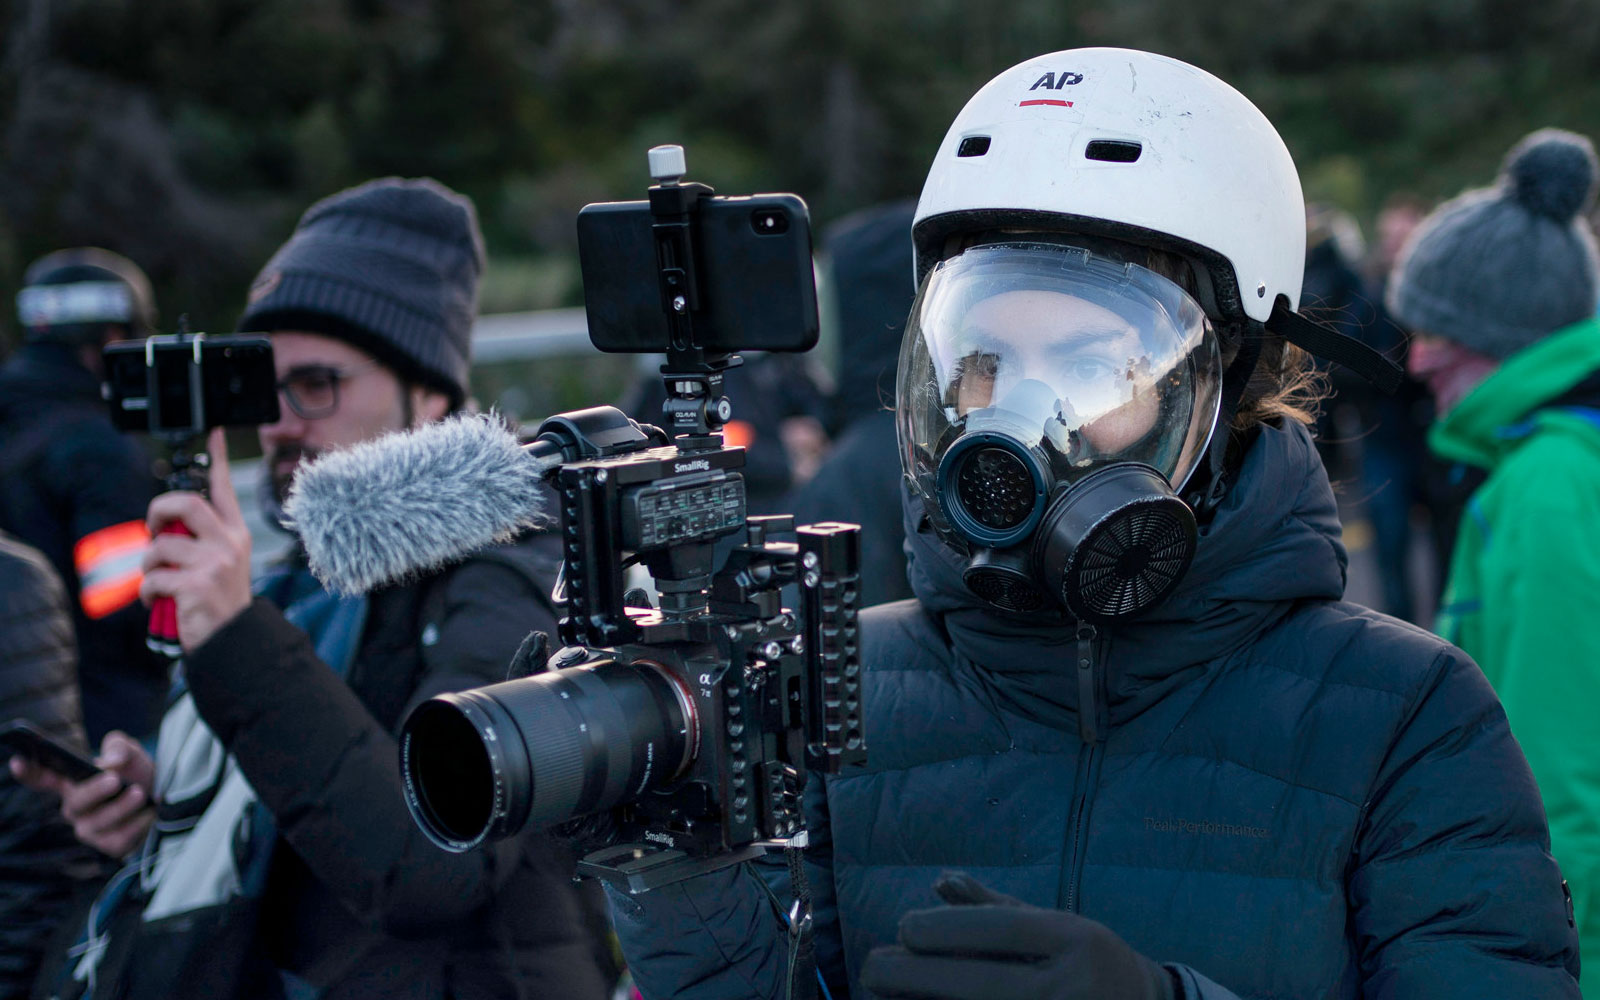 Associated Press photojournalist on assignment